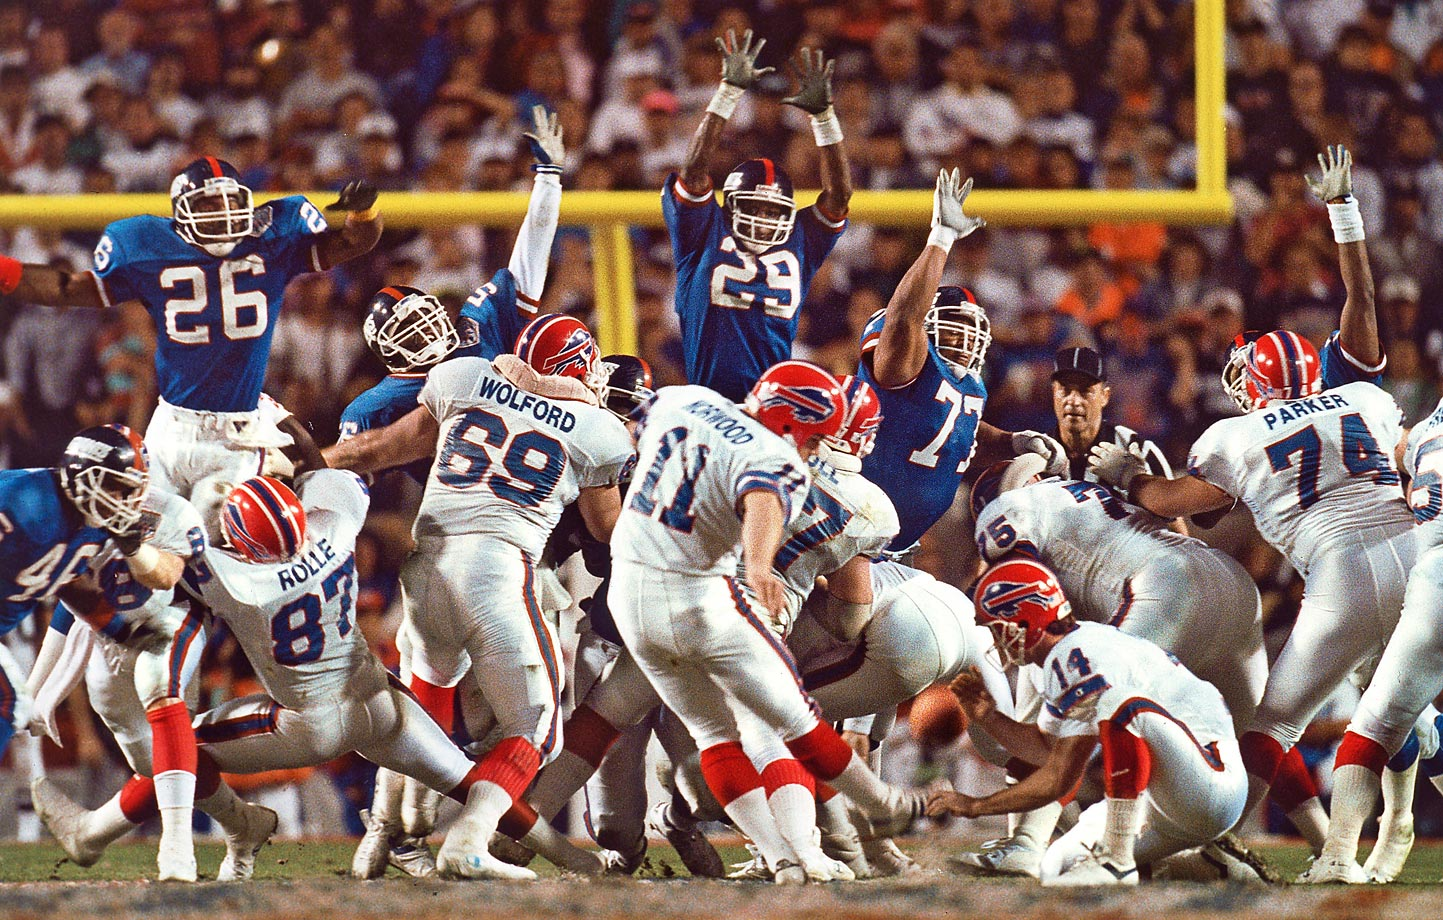 Buffalo Bills kicker Scott Norwood sends his game-winning field goal attempt wide right, securing the New York Giants' 20-19 victory in Super Bowl XXV in January 1991.